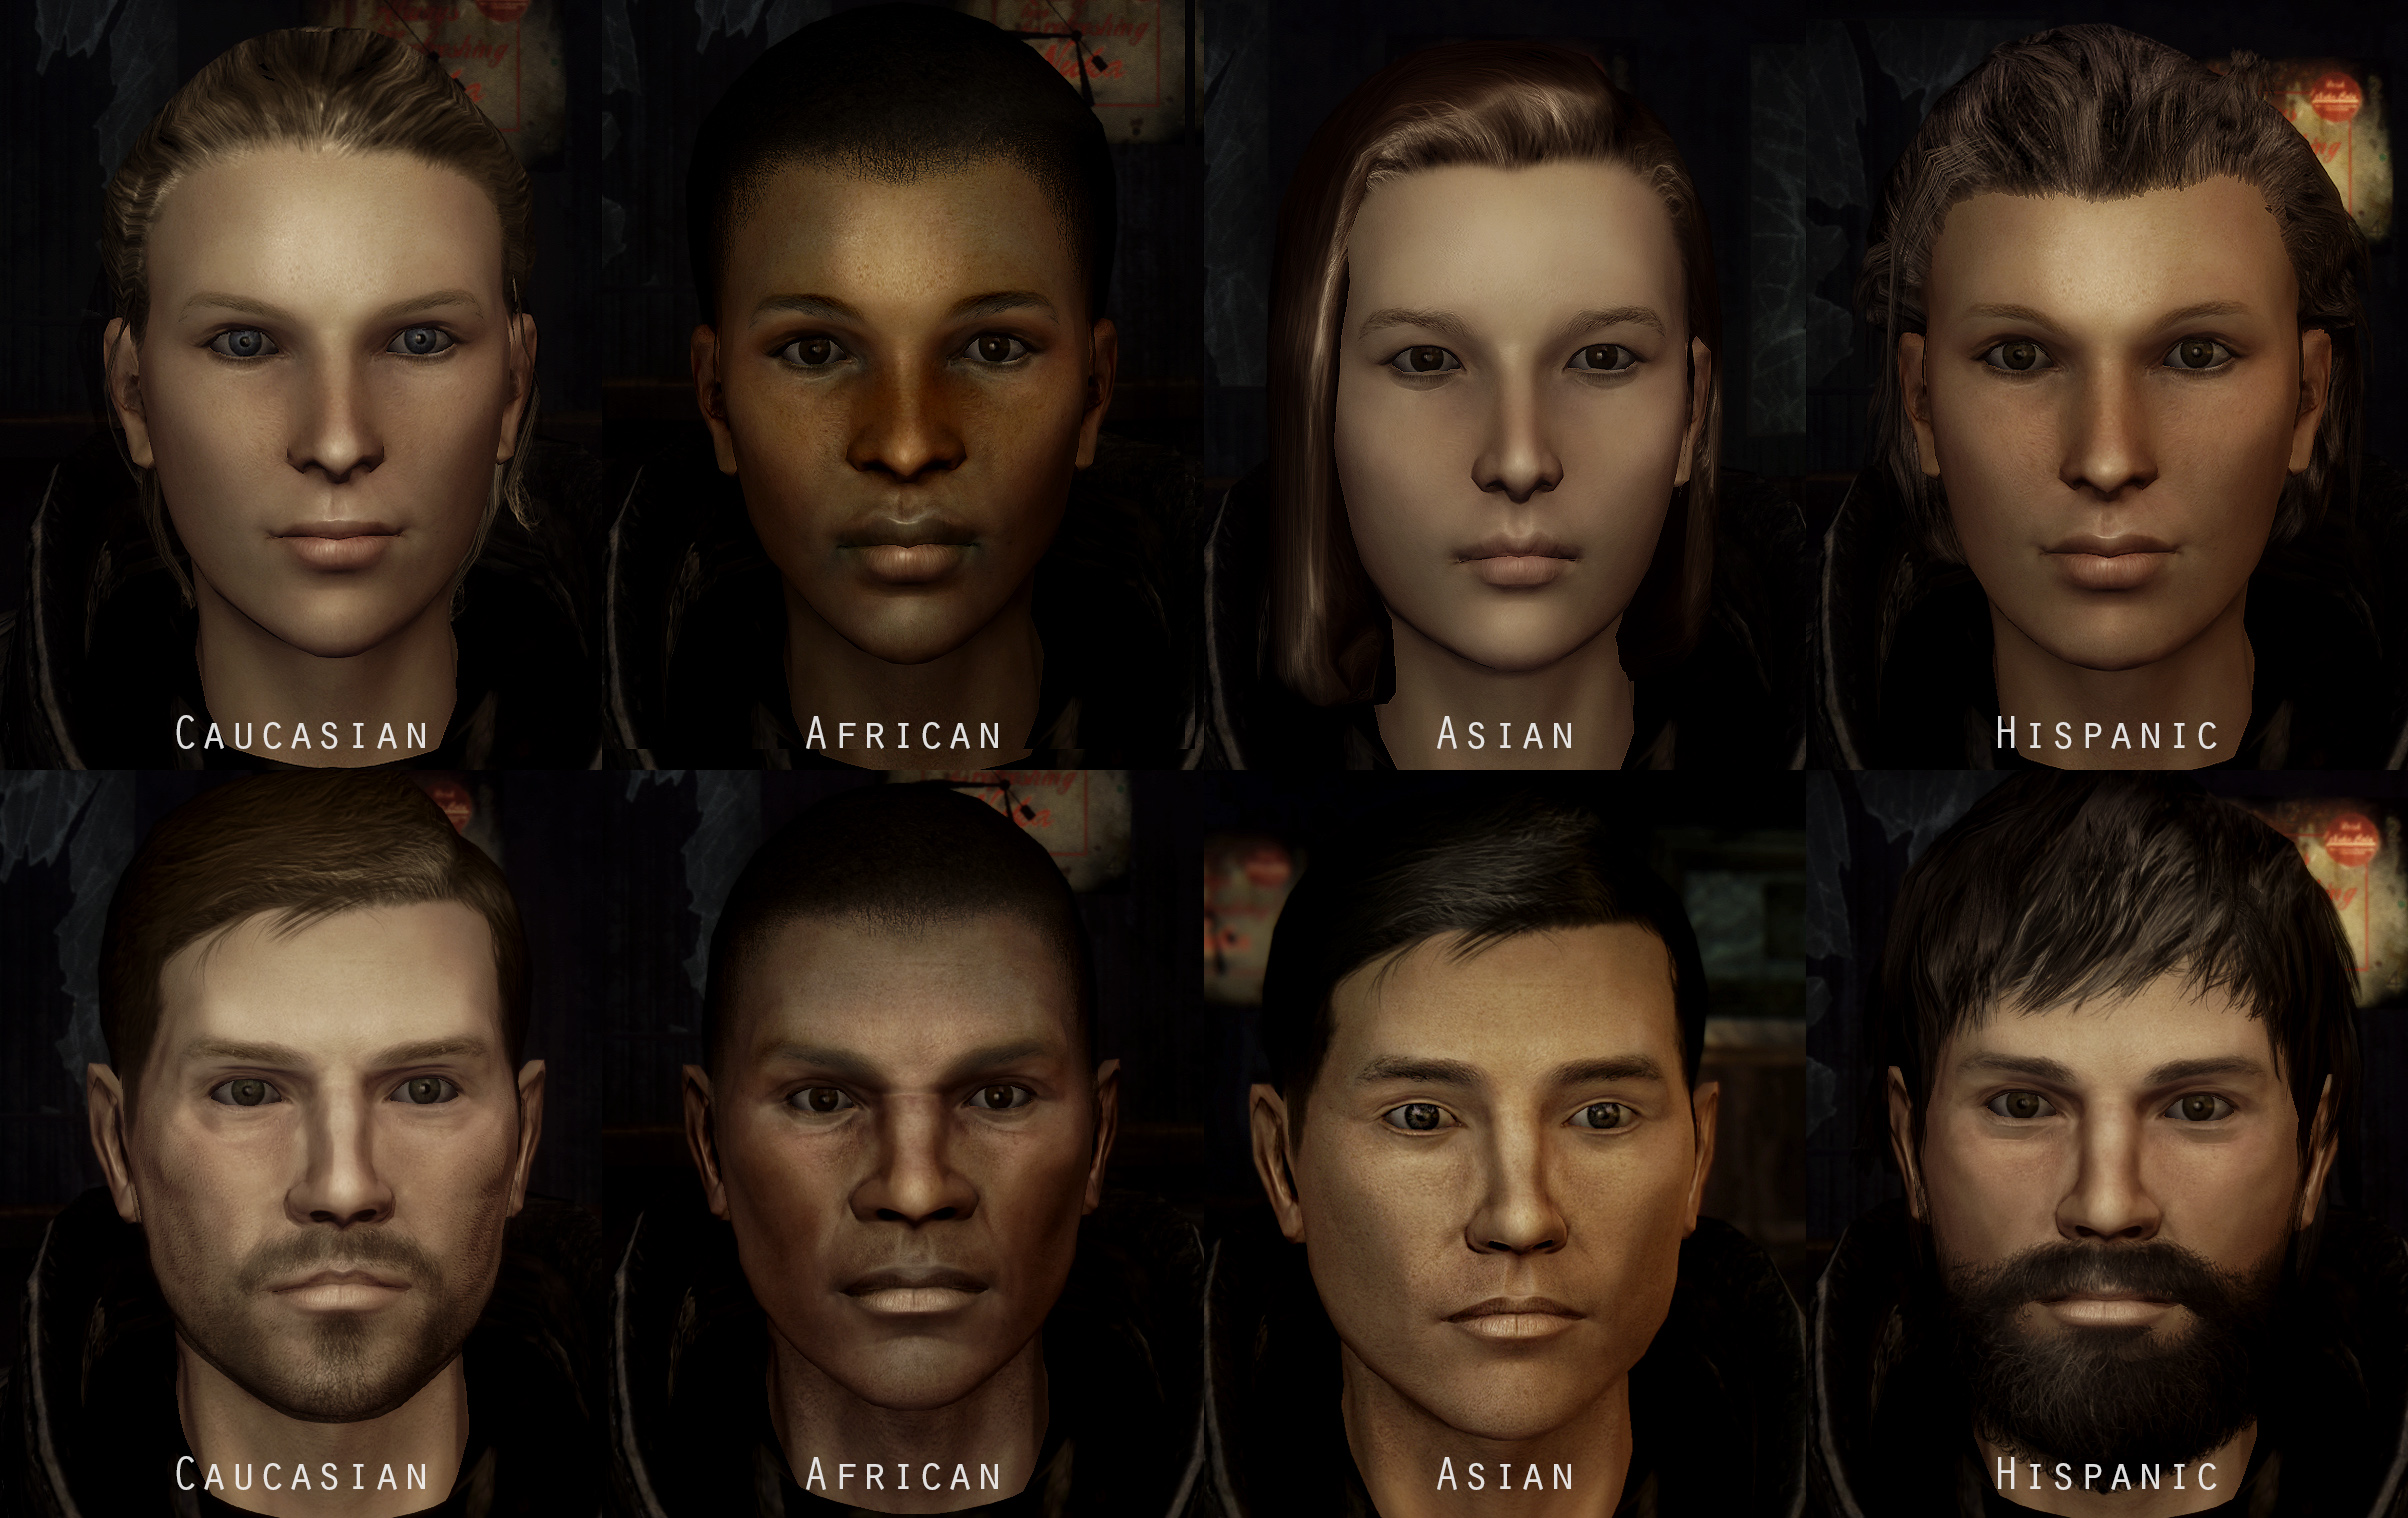 Fallout Character Overhaul - Races at Fallout3 Nexus